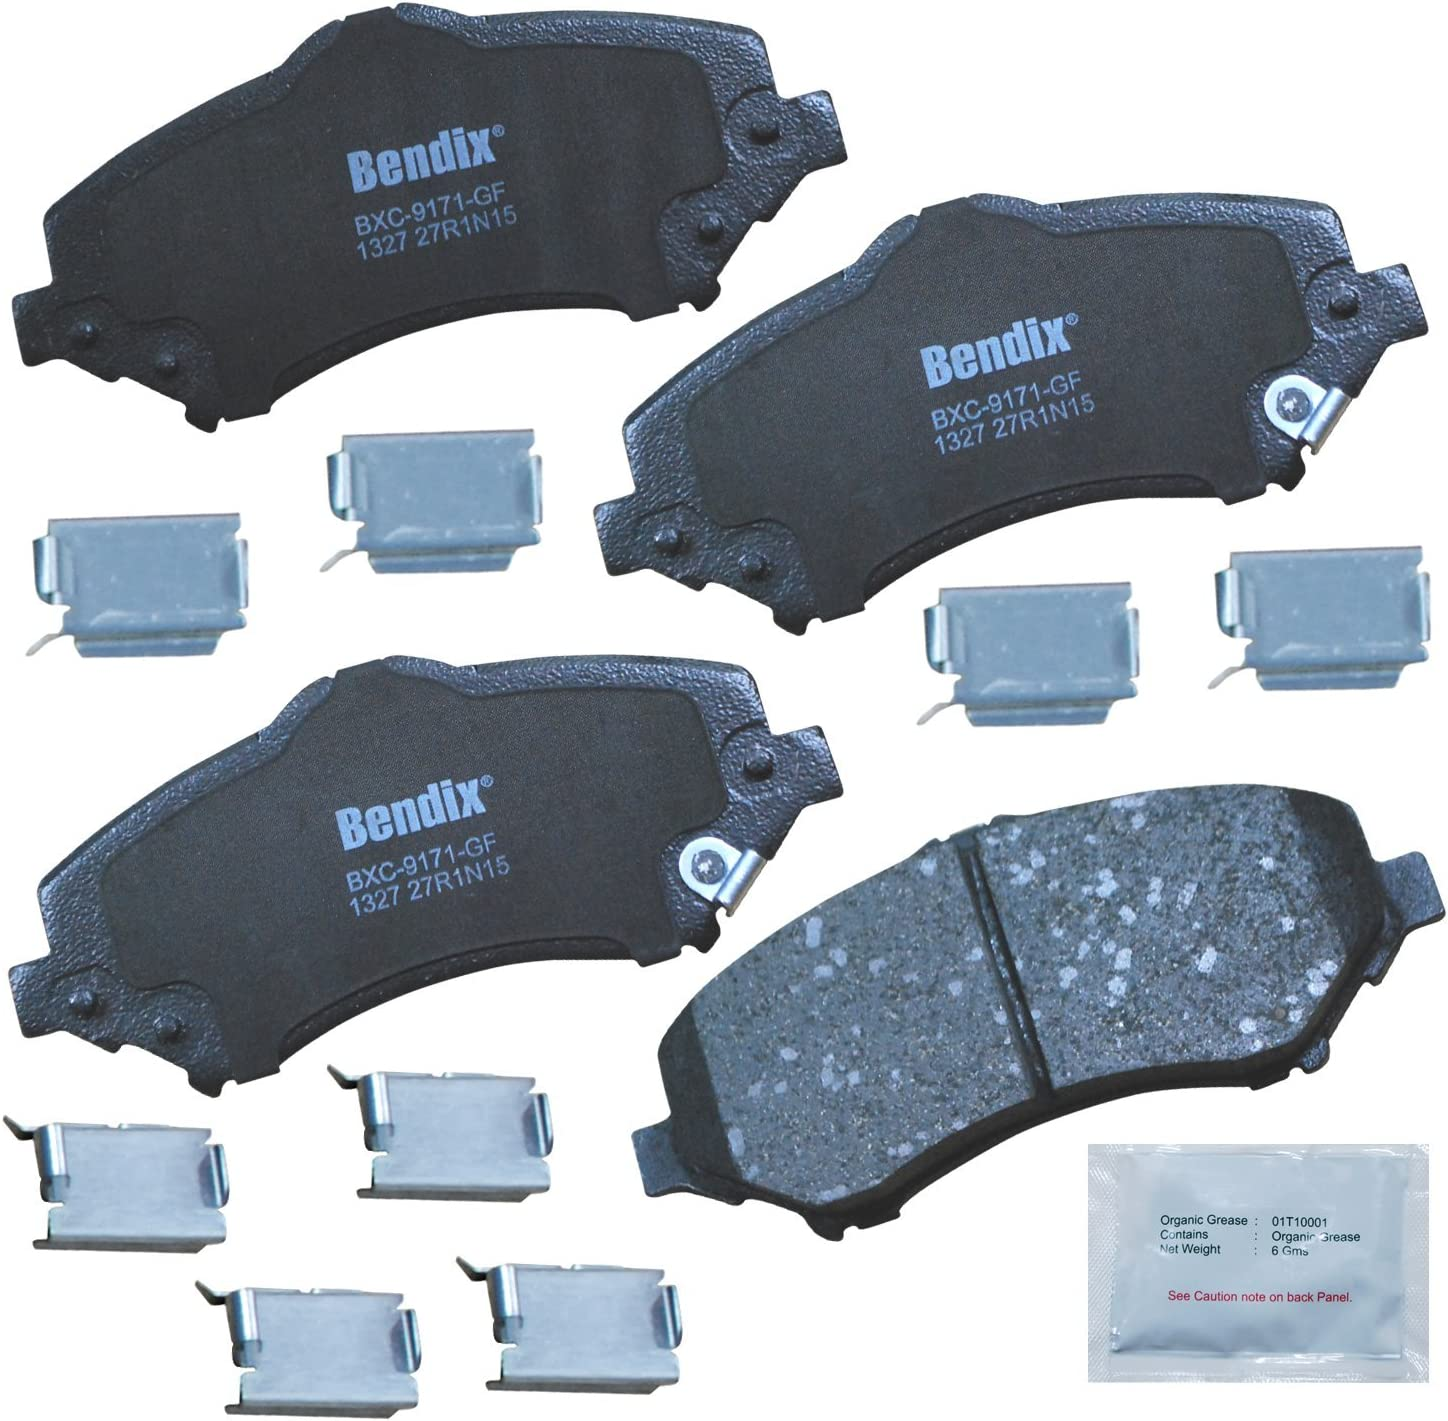 Bendix Premium Copper Free Ceramic Brake Pad